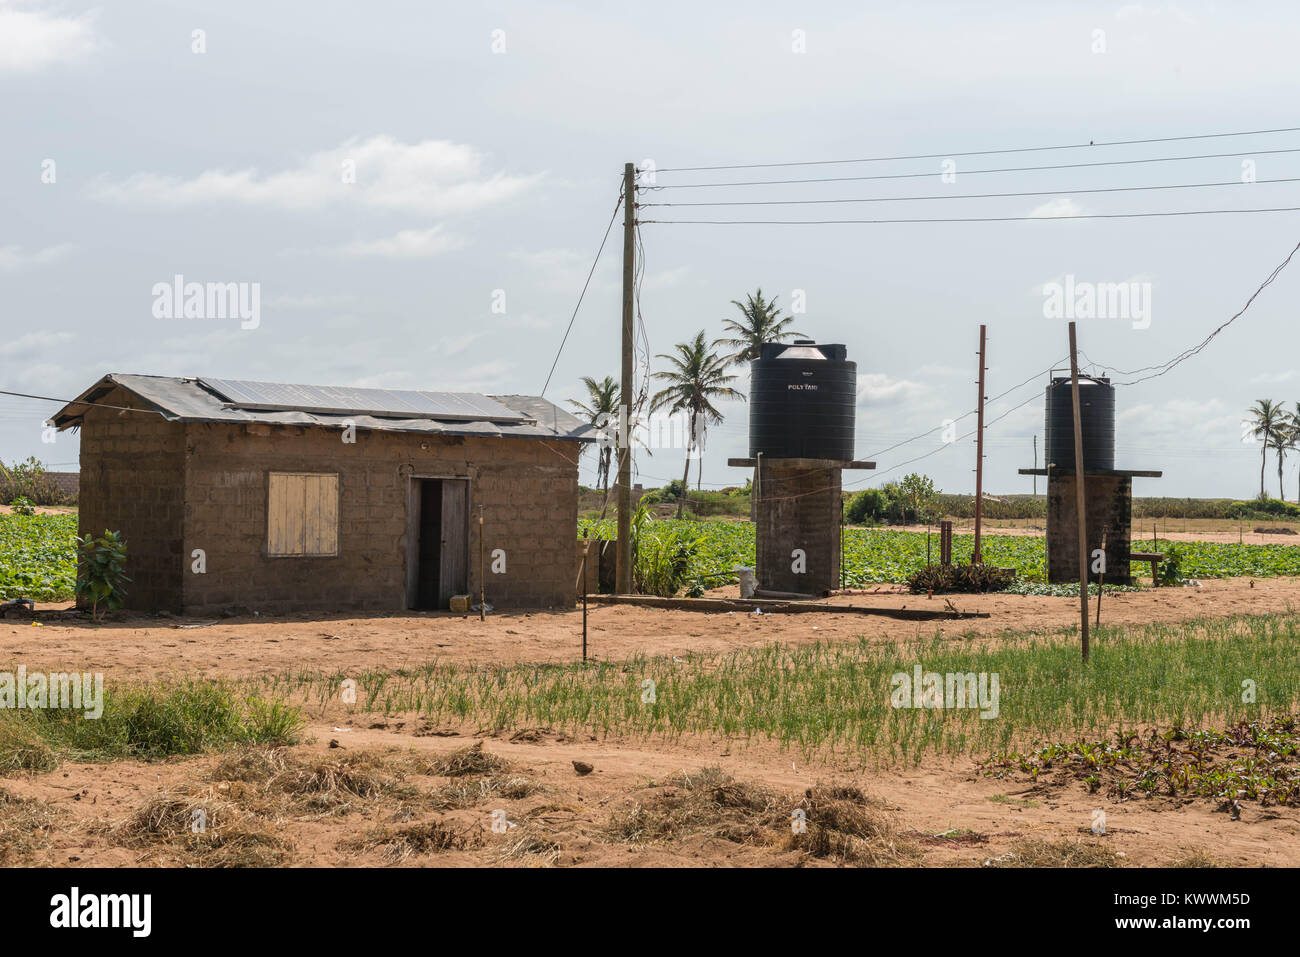 Solar panels on a roof, providing clean energy for The irrigation of fields, Anloga, Volta Region, Ghana, Africa - Stock Image